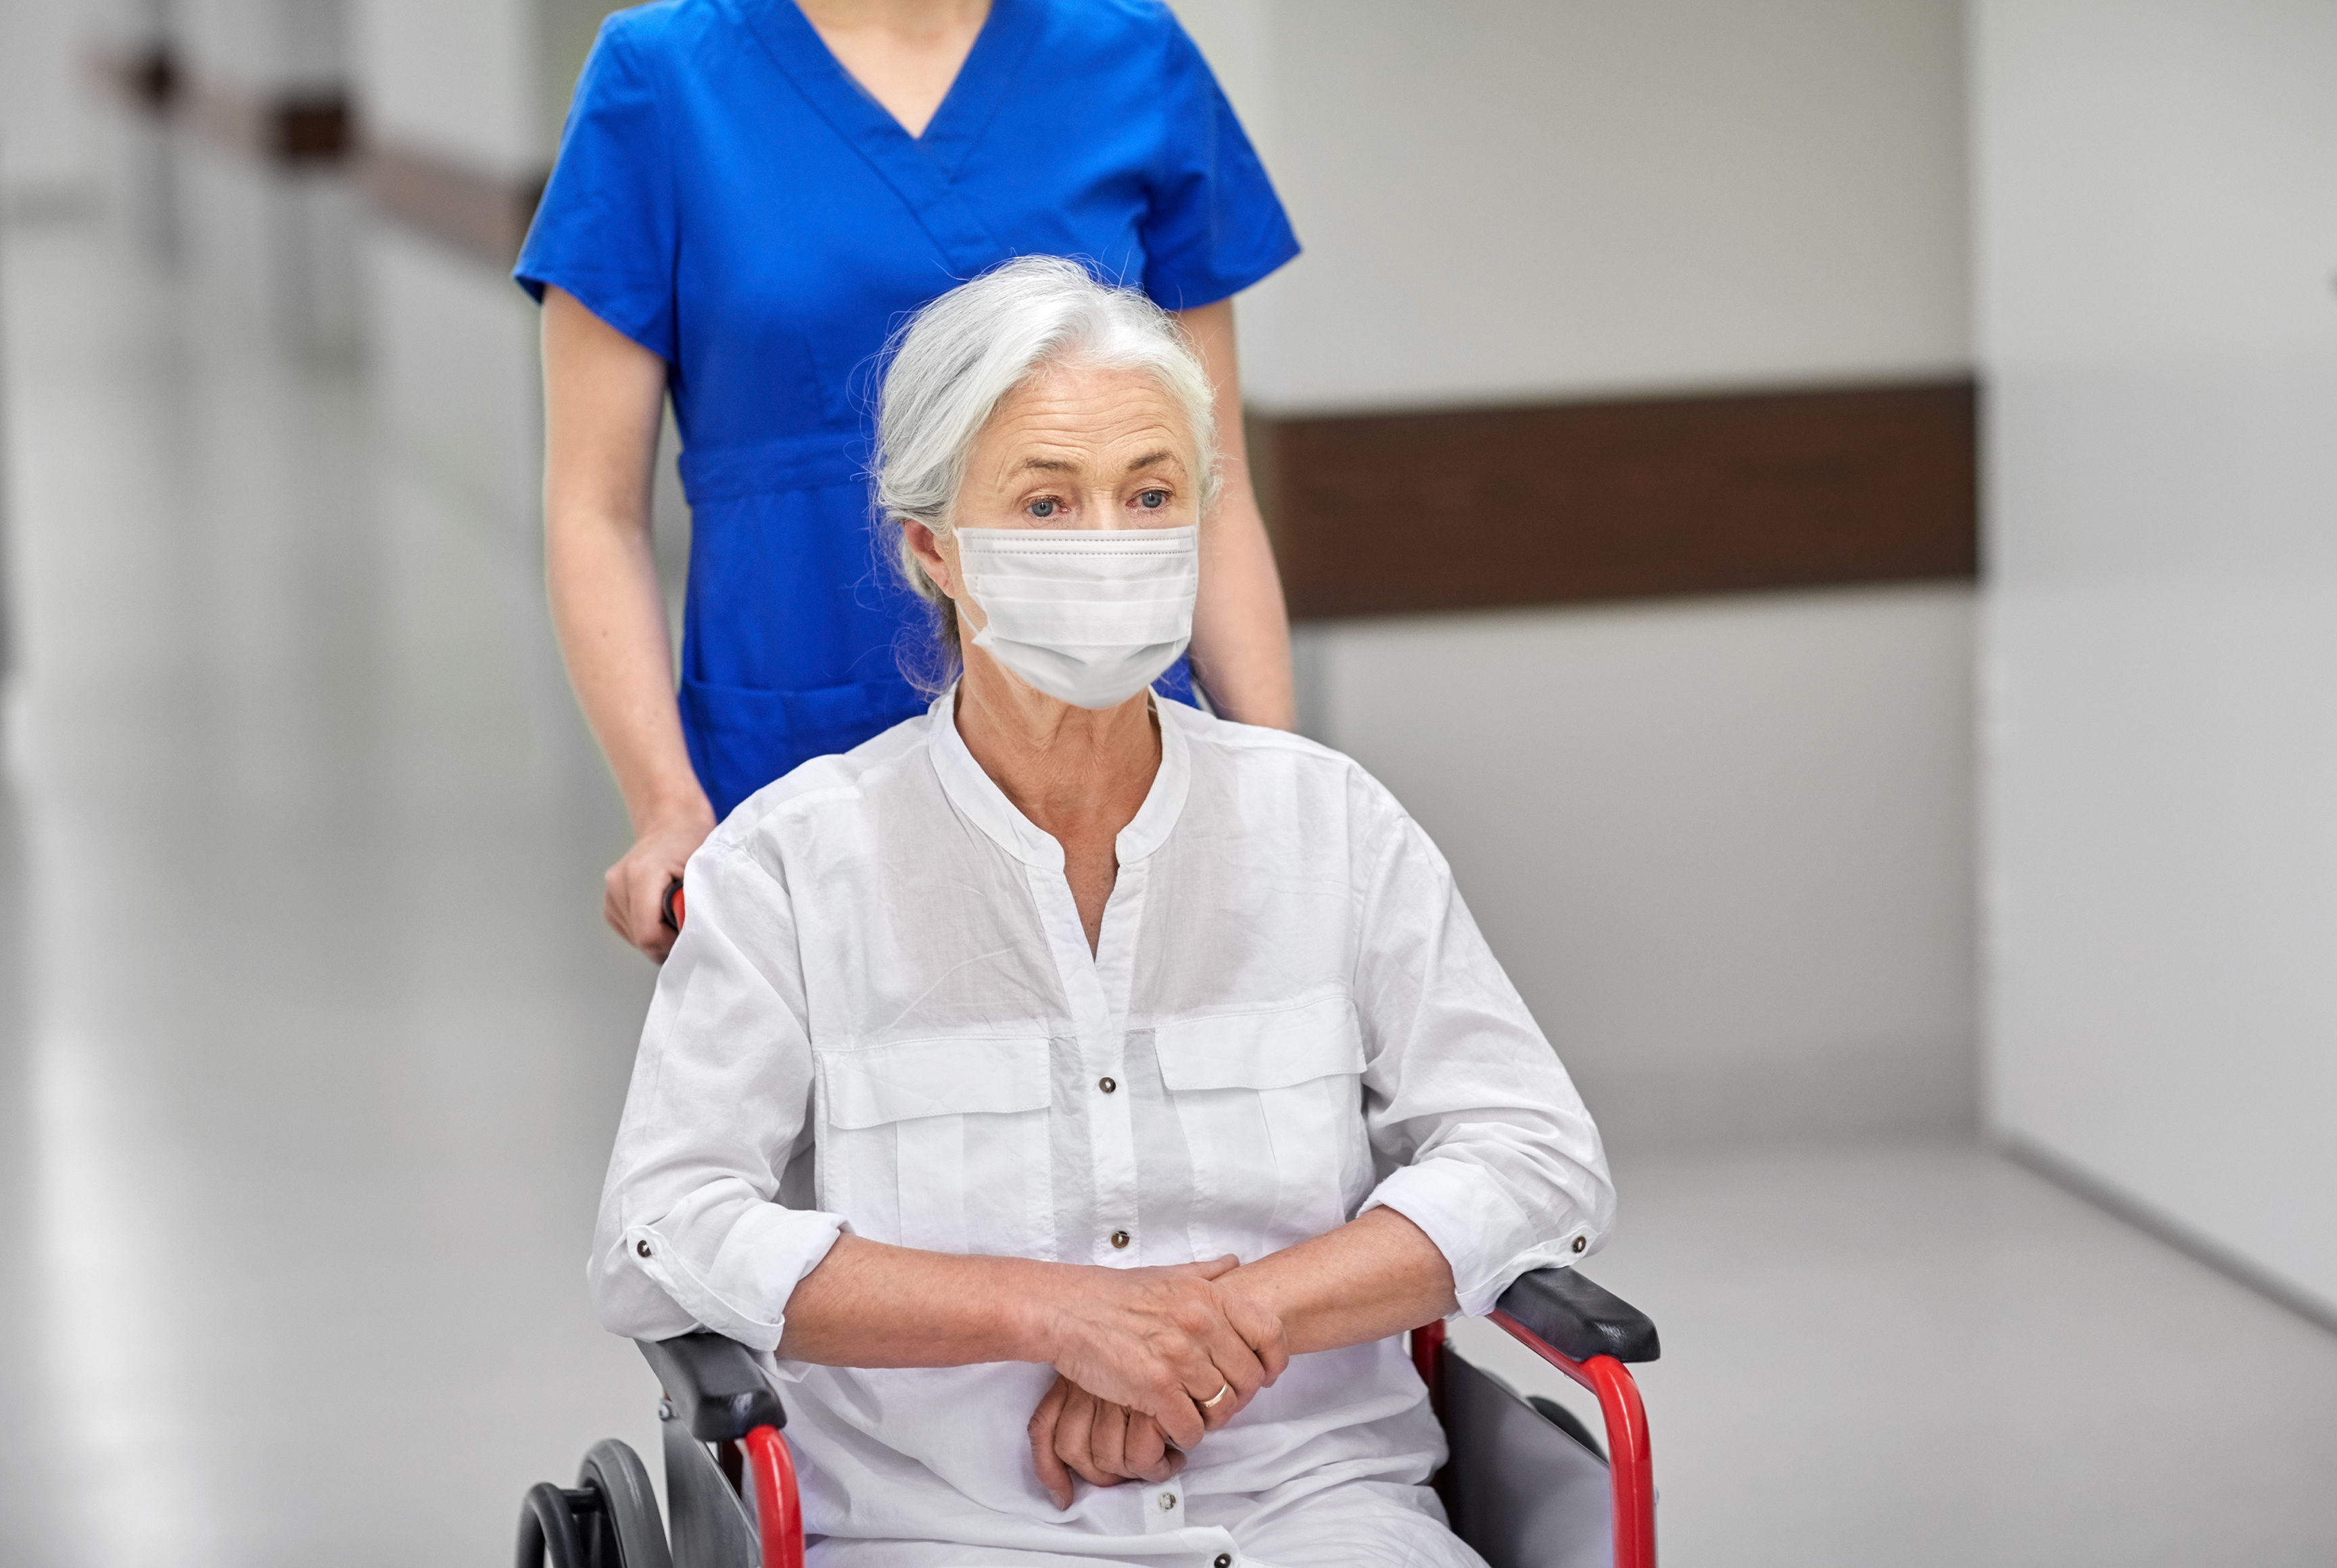 Coronavirus Commission for Safety and Quality in Nursing Homes Report